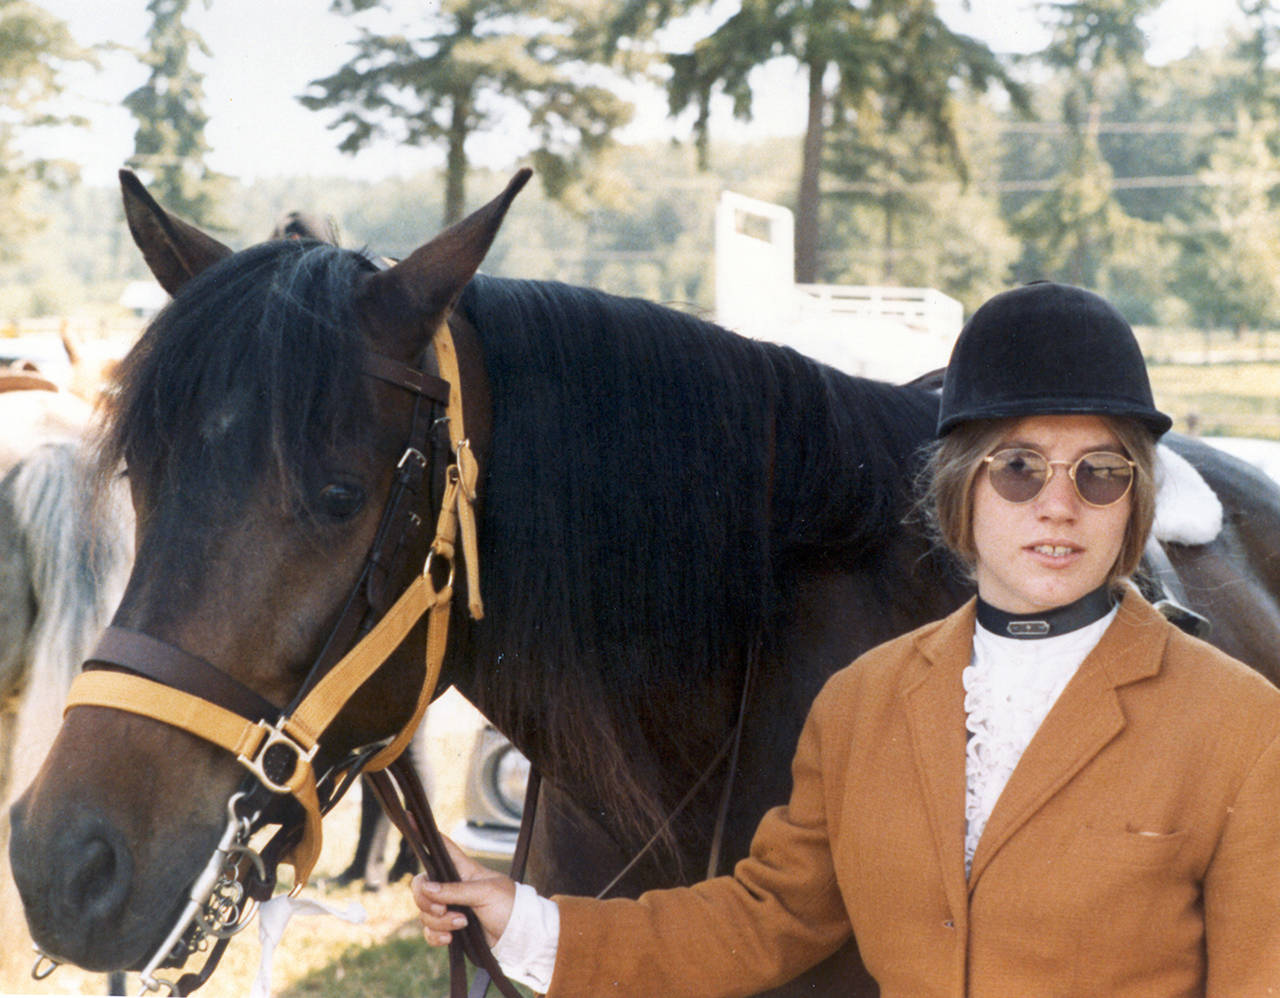 Jody Loomis with her horse in 1972. (Snohomish County Sheriff's Office)